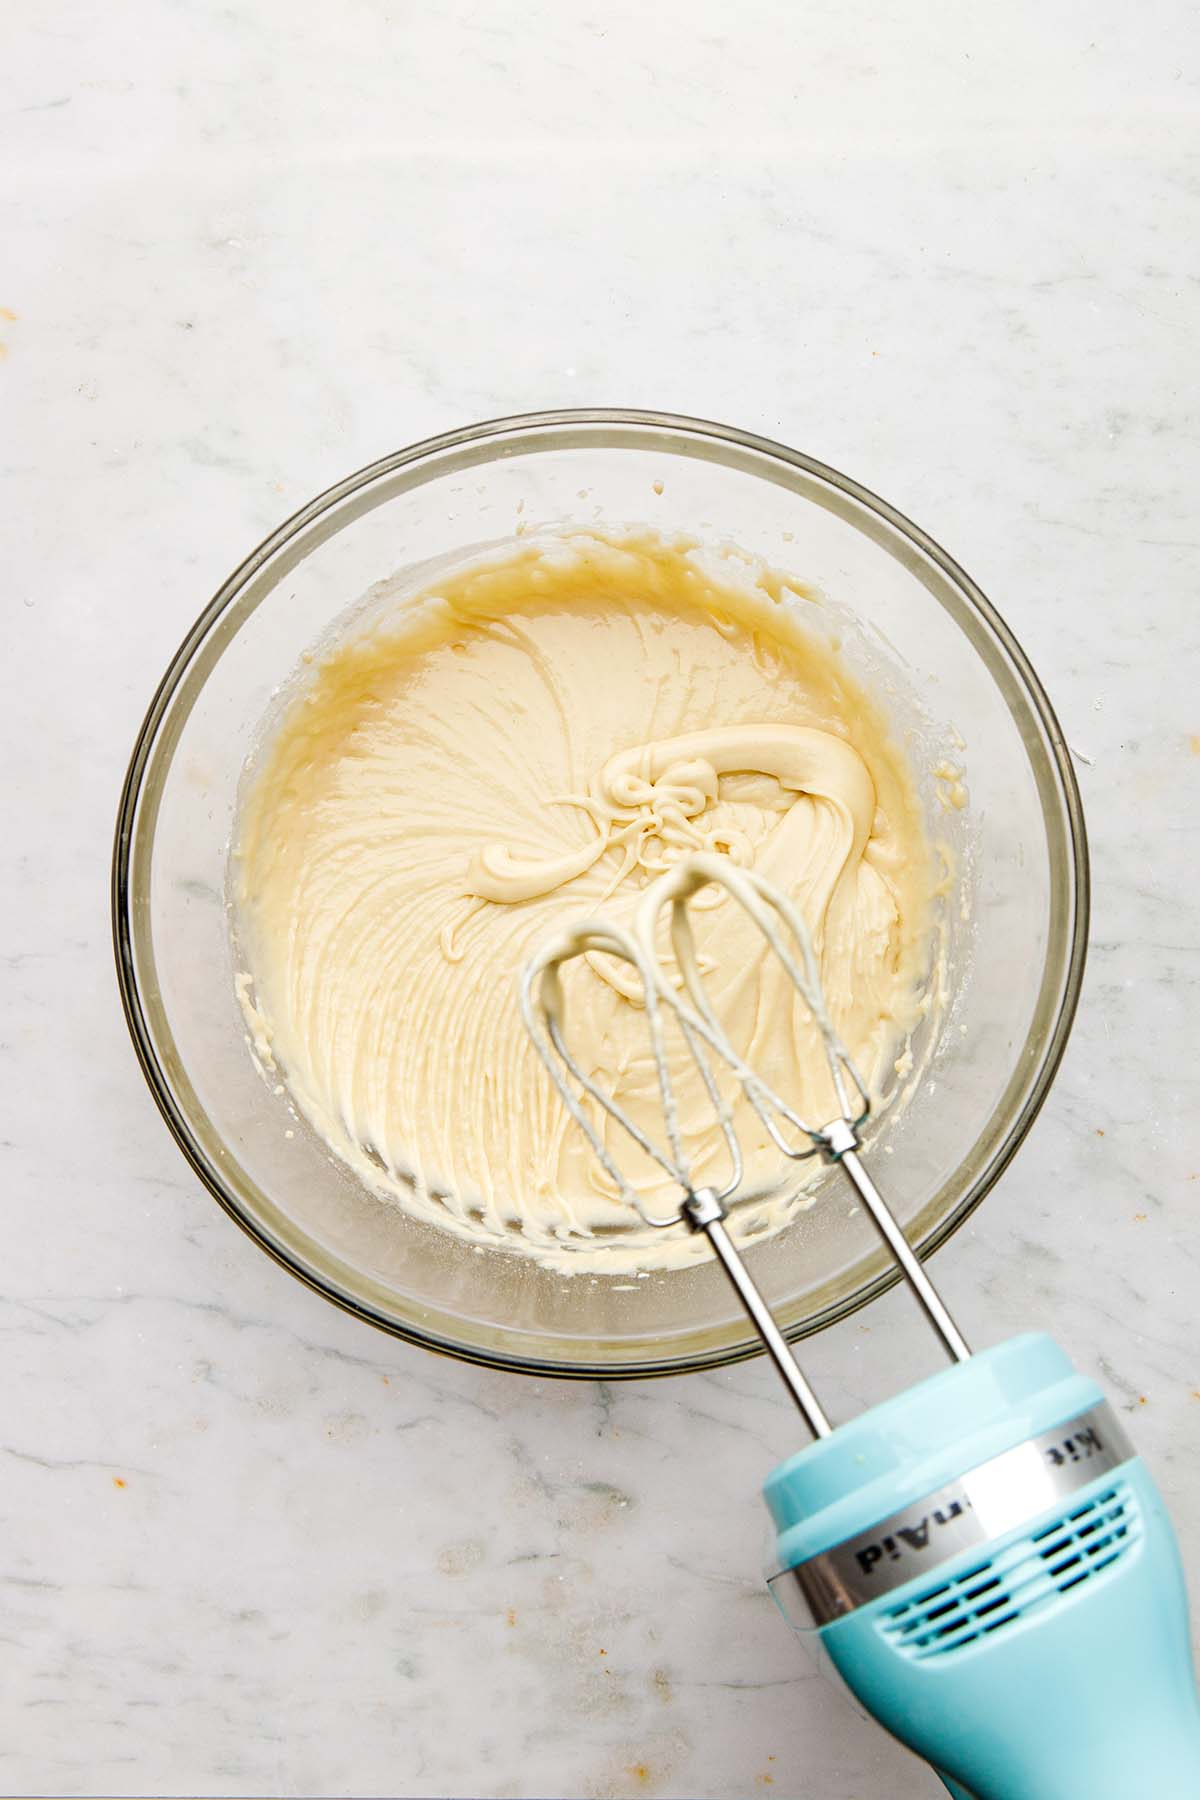 Mixed cake batter in a bowl with a hand mixer nearby.